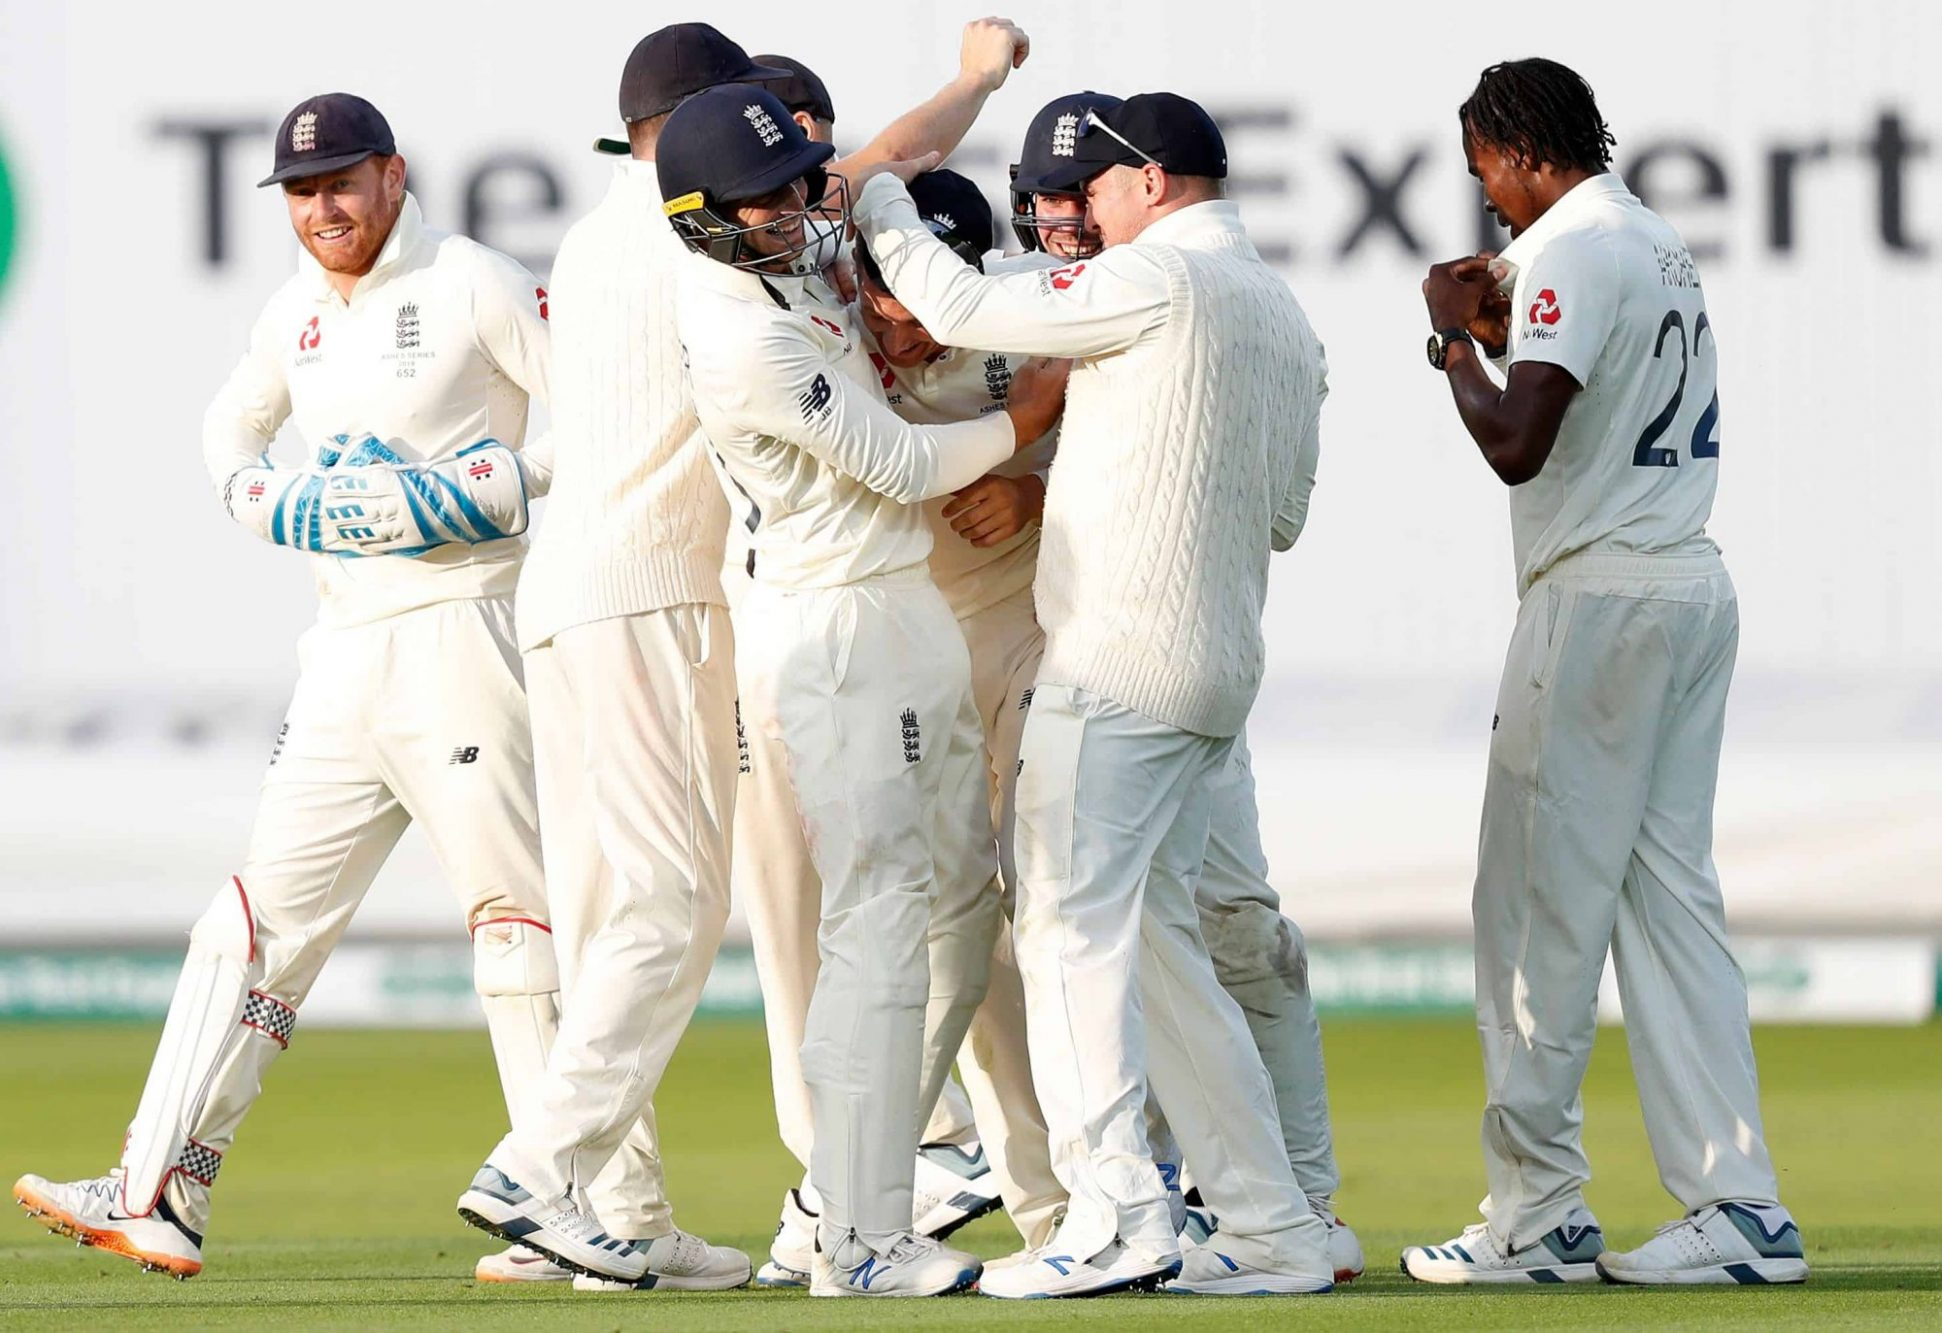 India vs England, 2nd Test: Sale of Tickets From February 8, When, Where & How to Book Tickets?